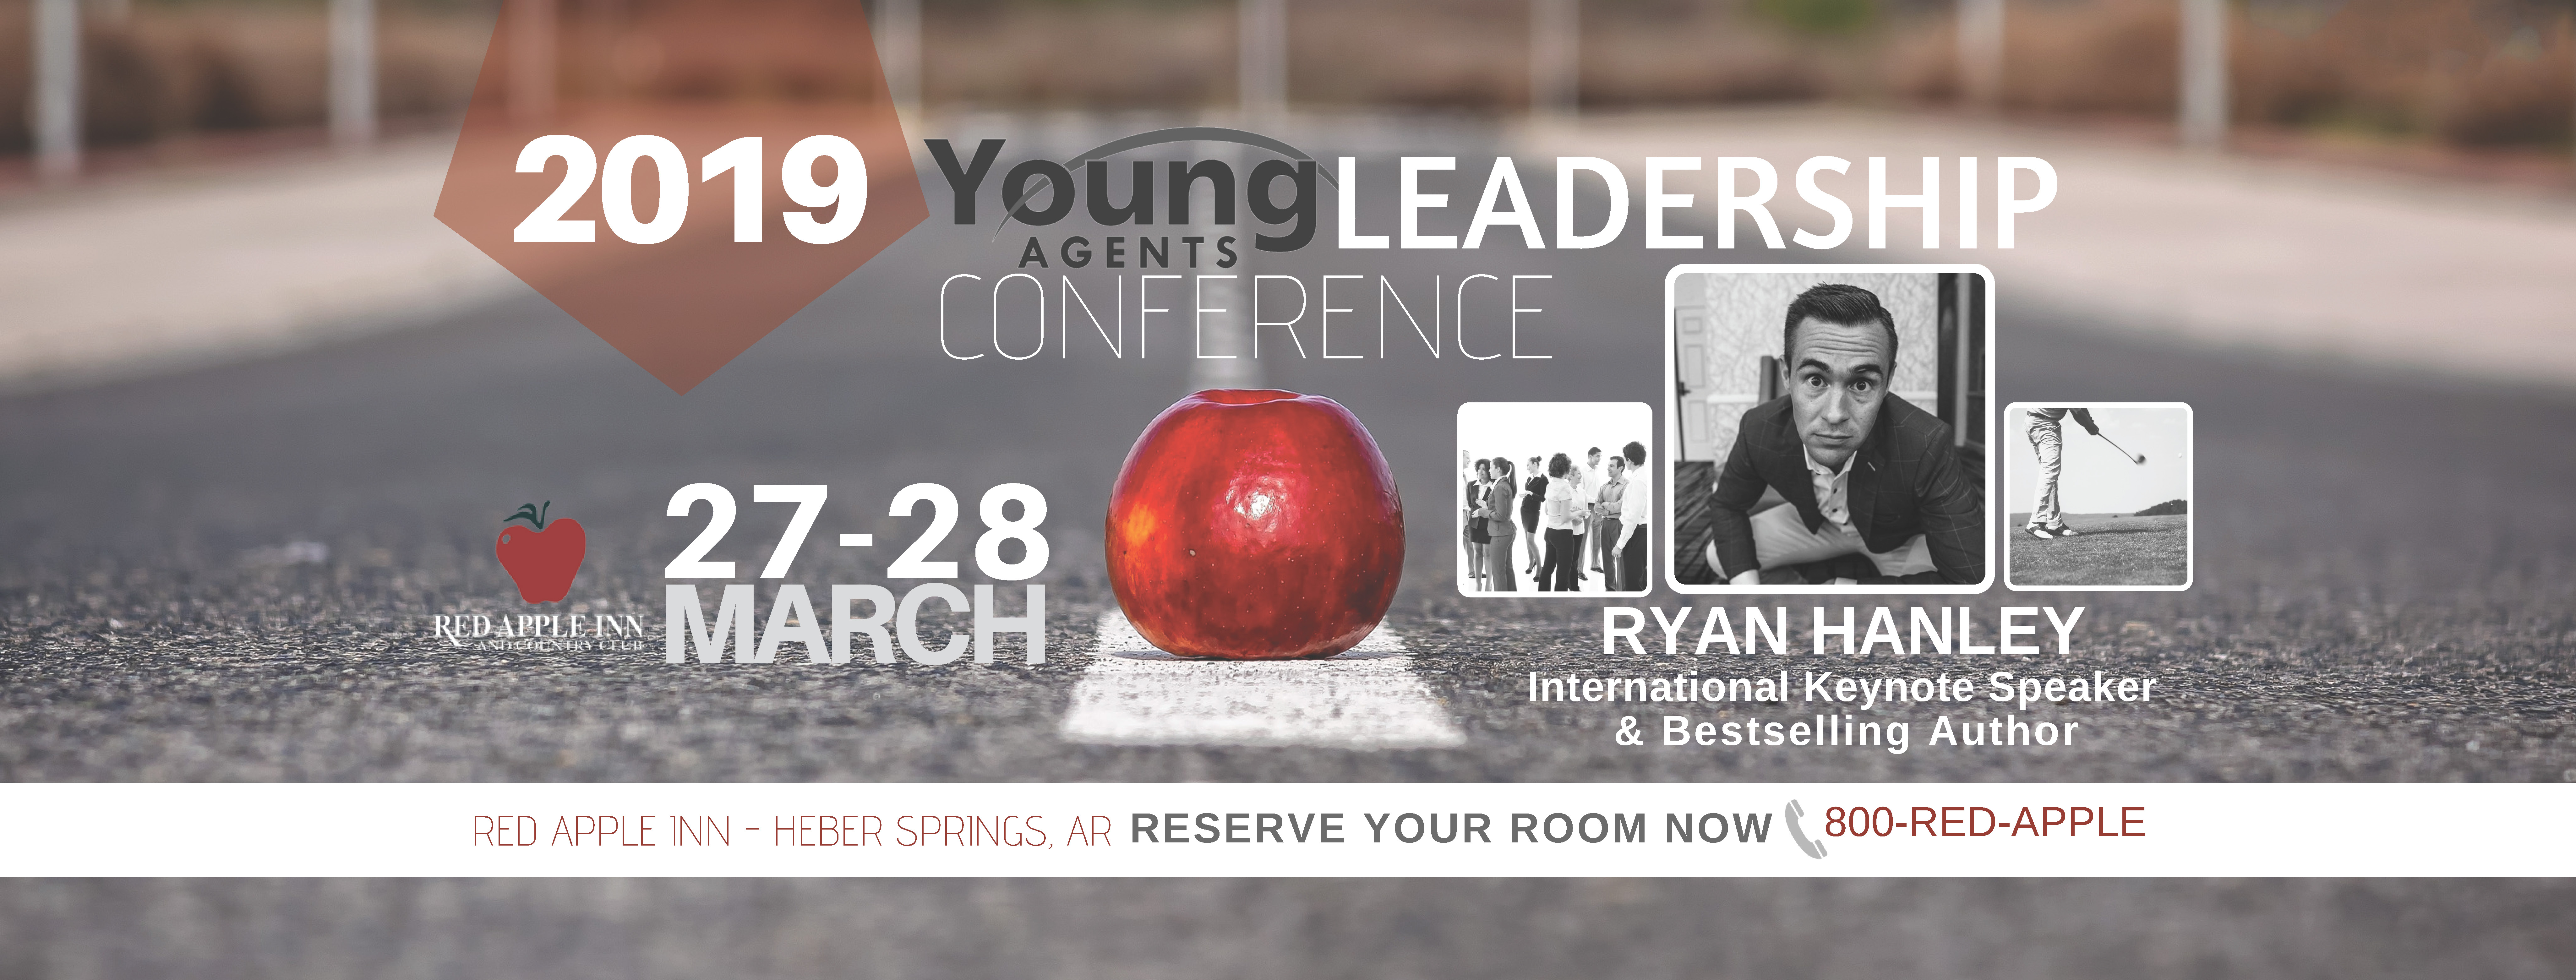 YOUNG AGENTS LEADERSHIP CONFERENCE COVER NEW.jpg